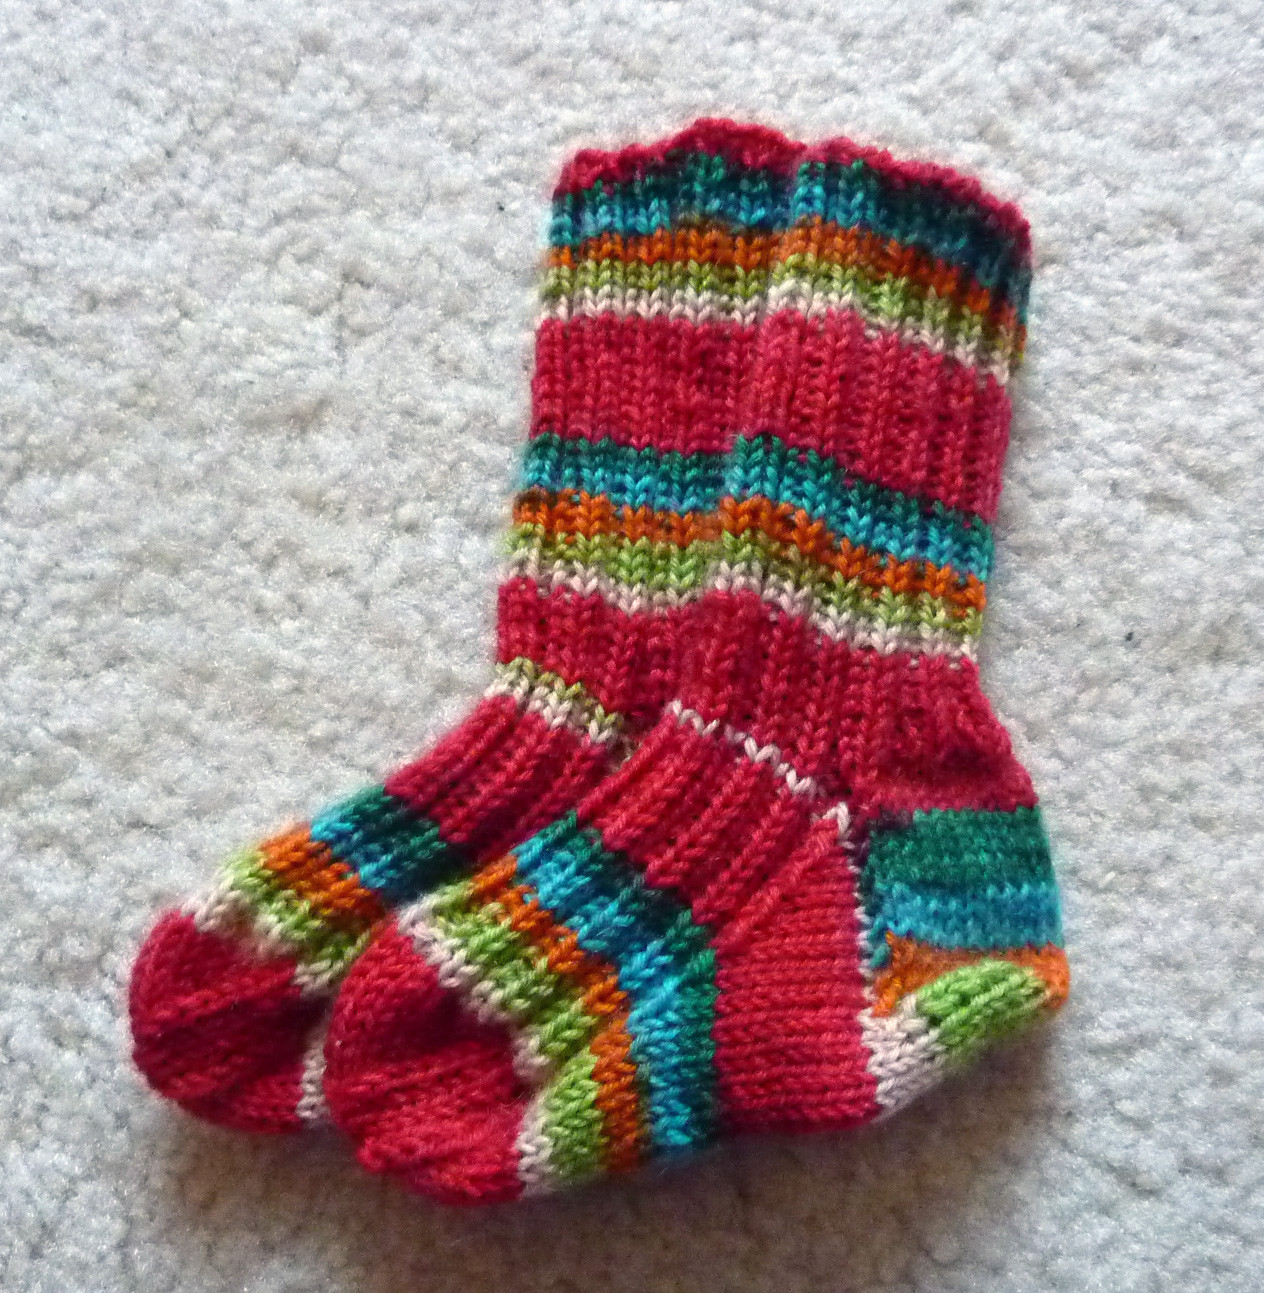 Best Of Baby socks Baby socks Knitting Pattern Of Marvelous 40 Photos Baby socks Knitting Pattern